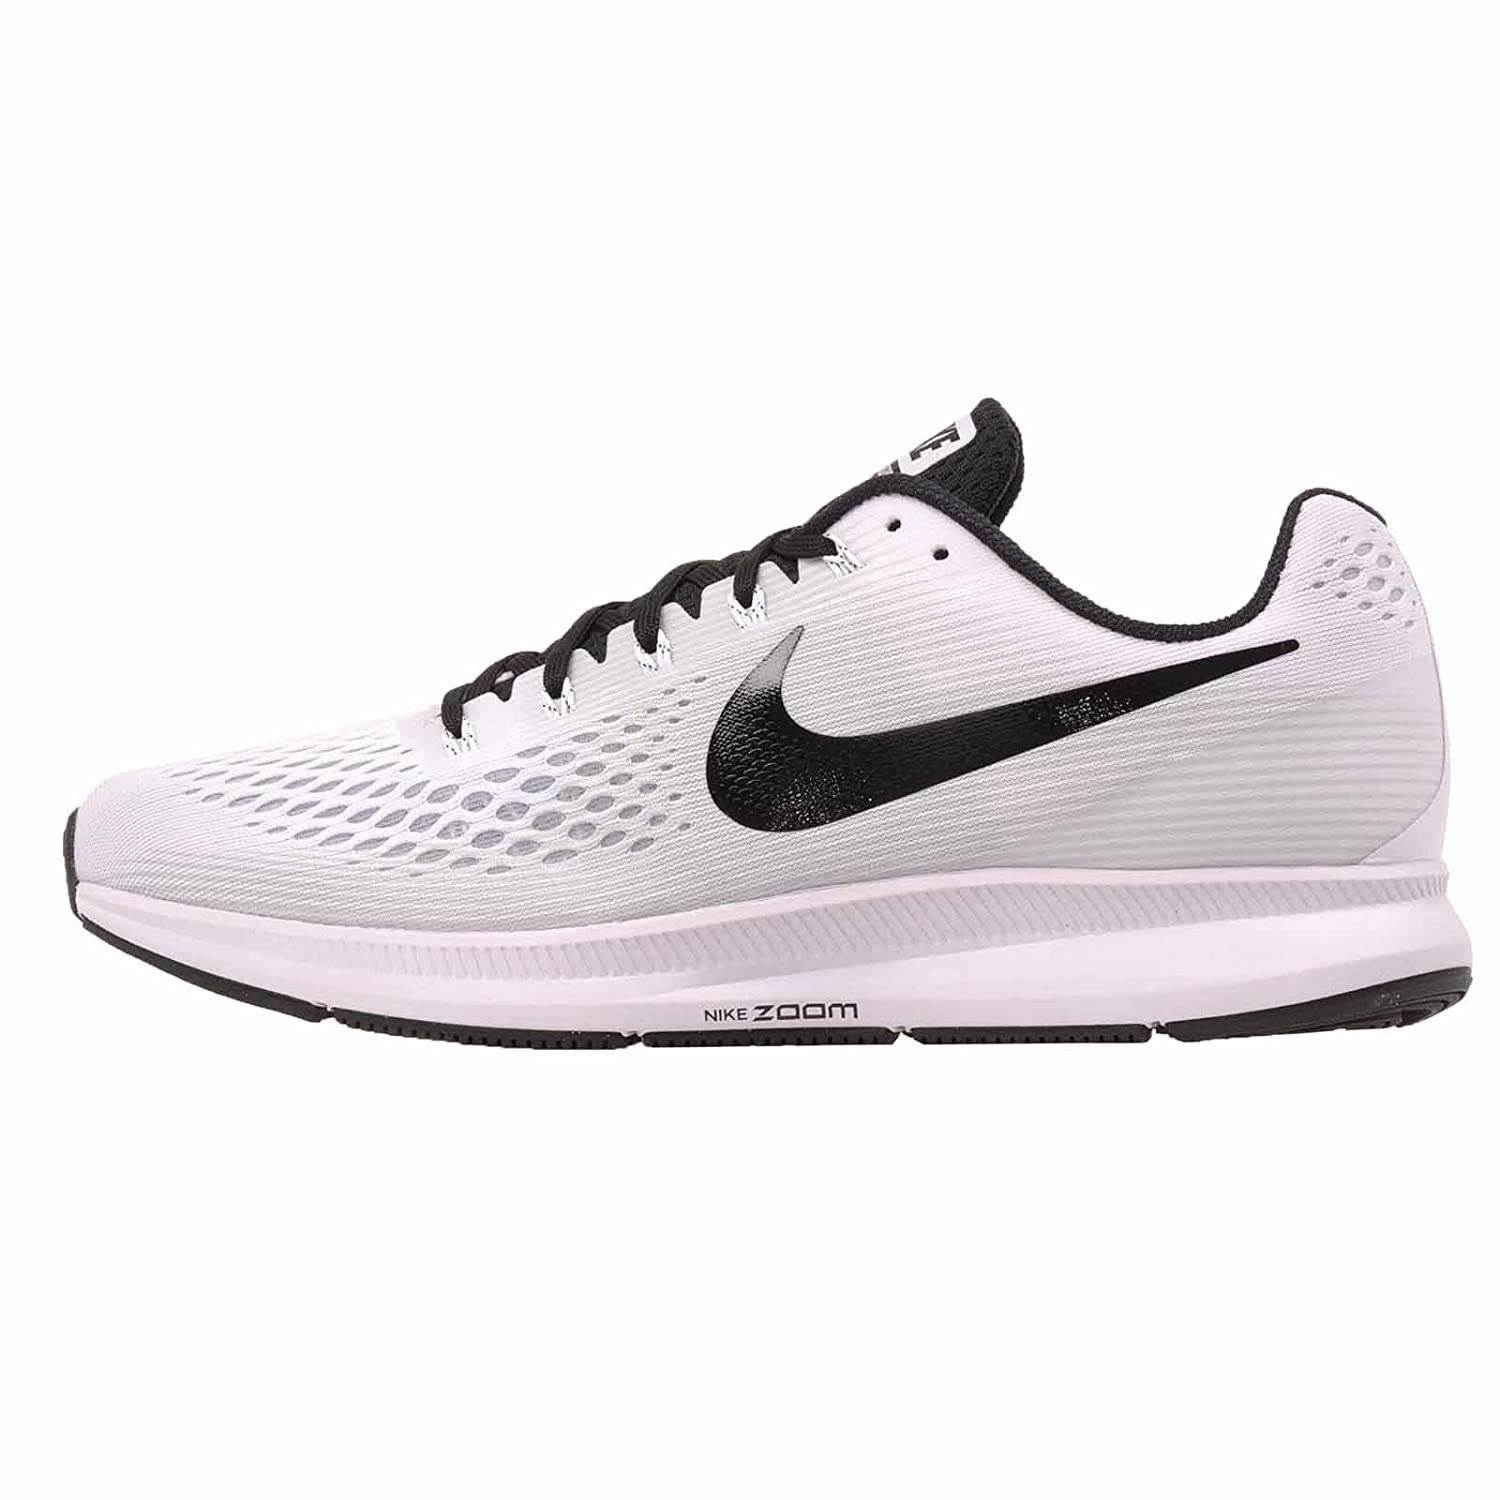 reputable site 93550 893ed Nike Men's Air Zoom Pegasus 34 TB, White/Black, 10 M US